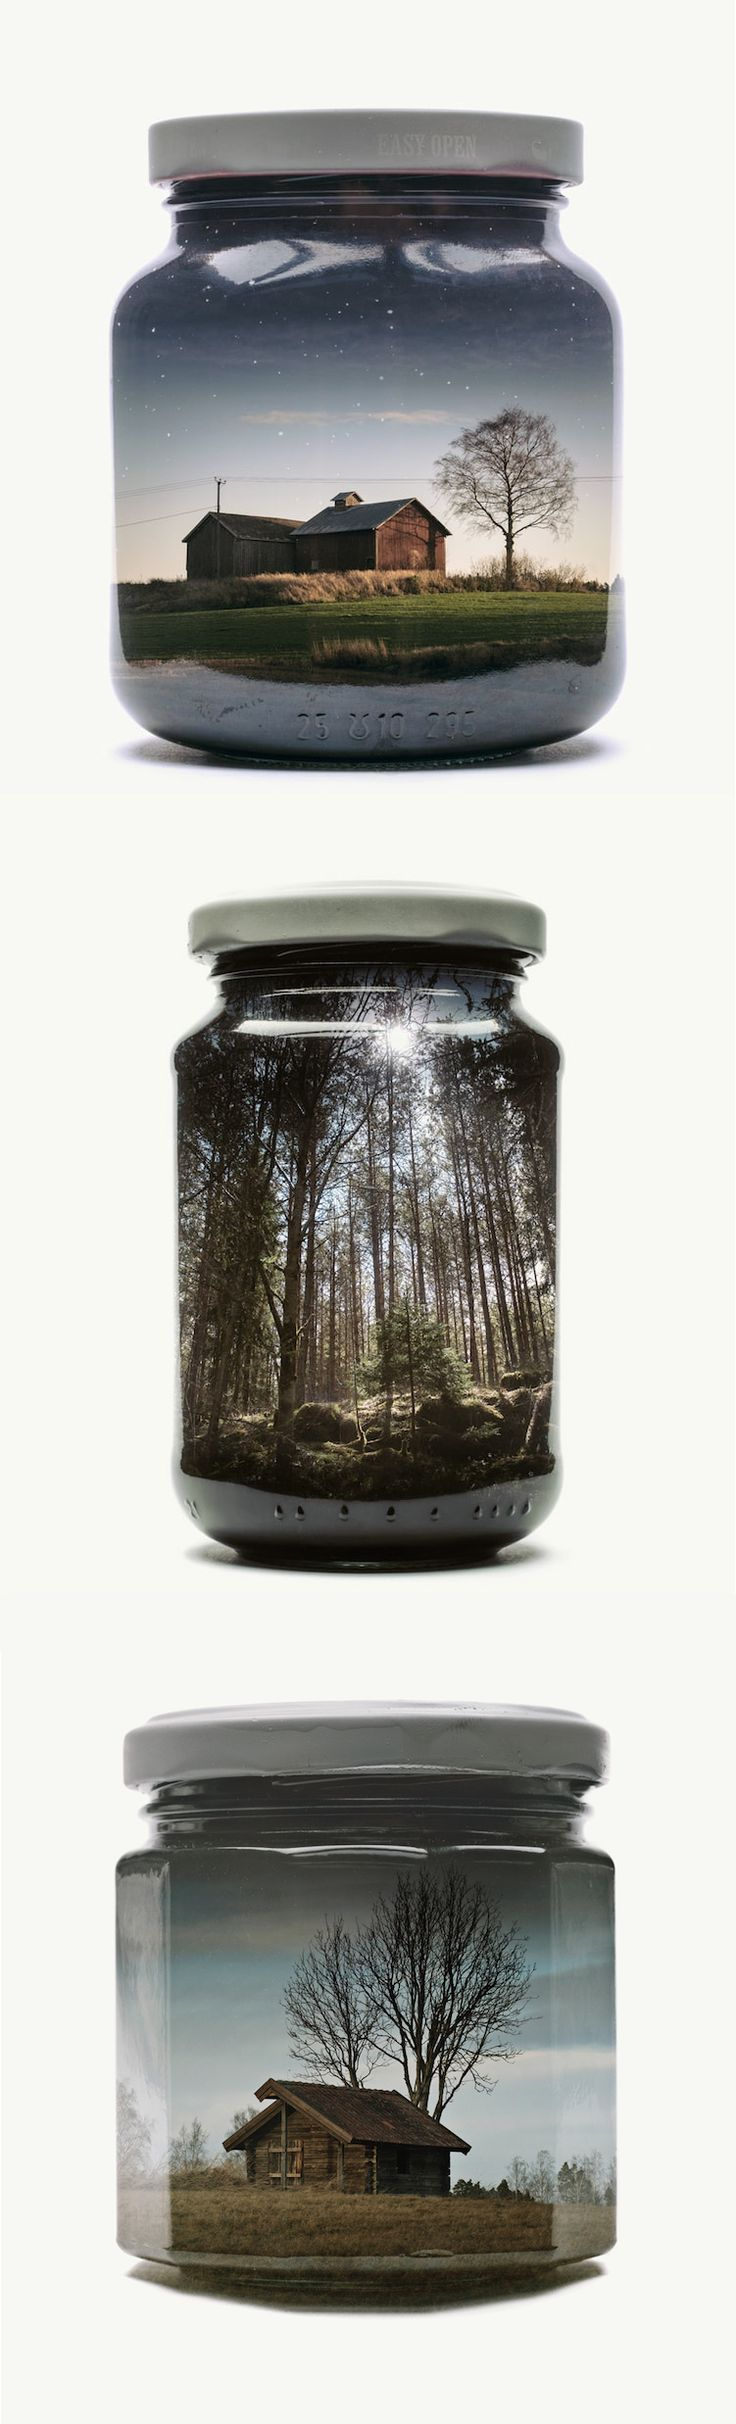 Photographer Christoffer Relander collects memories in an unusual way.